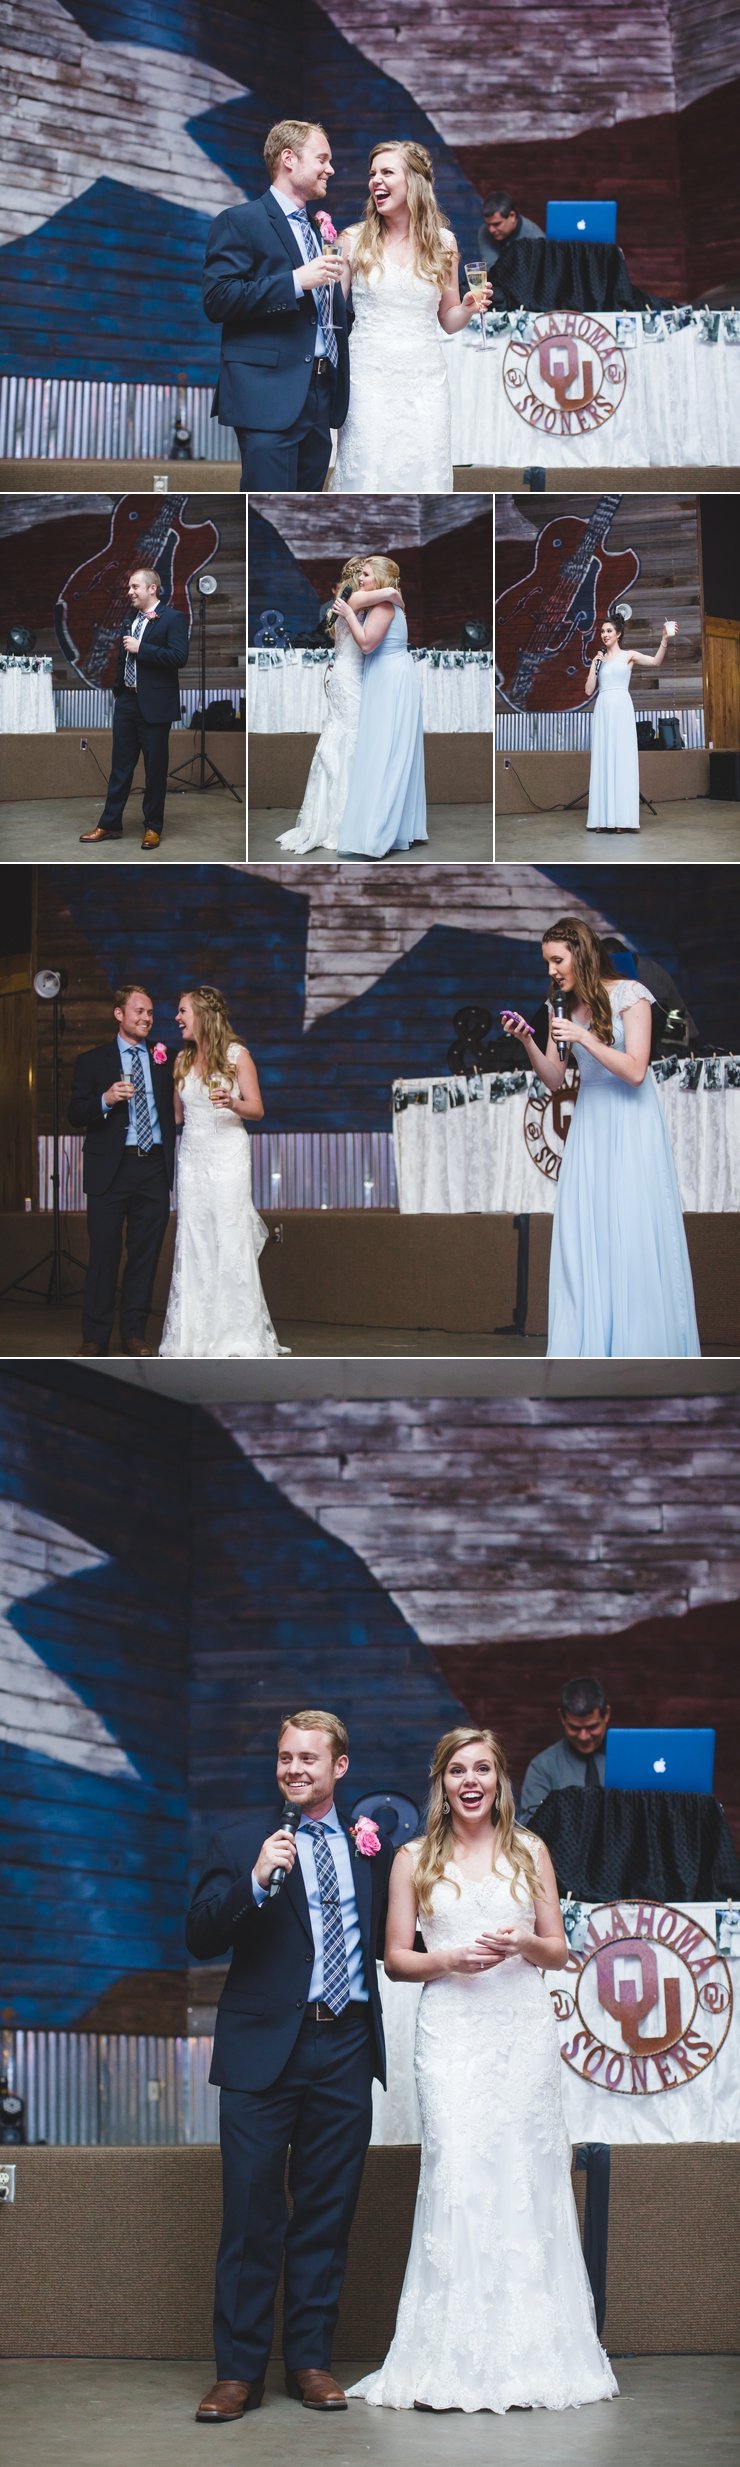 White Wedding - Blog Collages 16.jpg